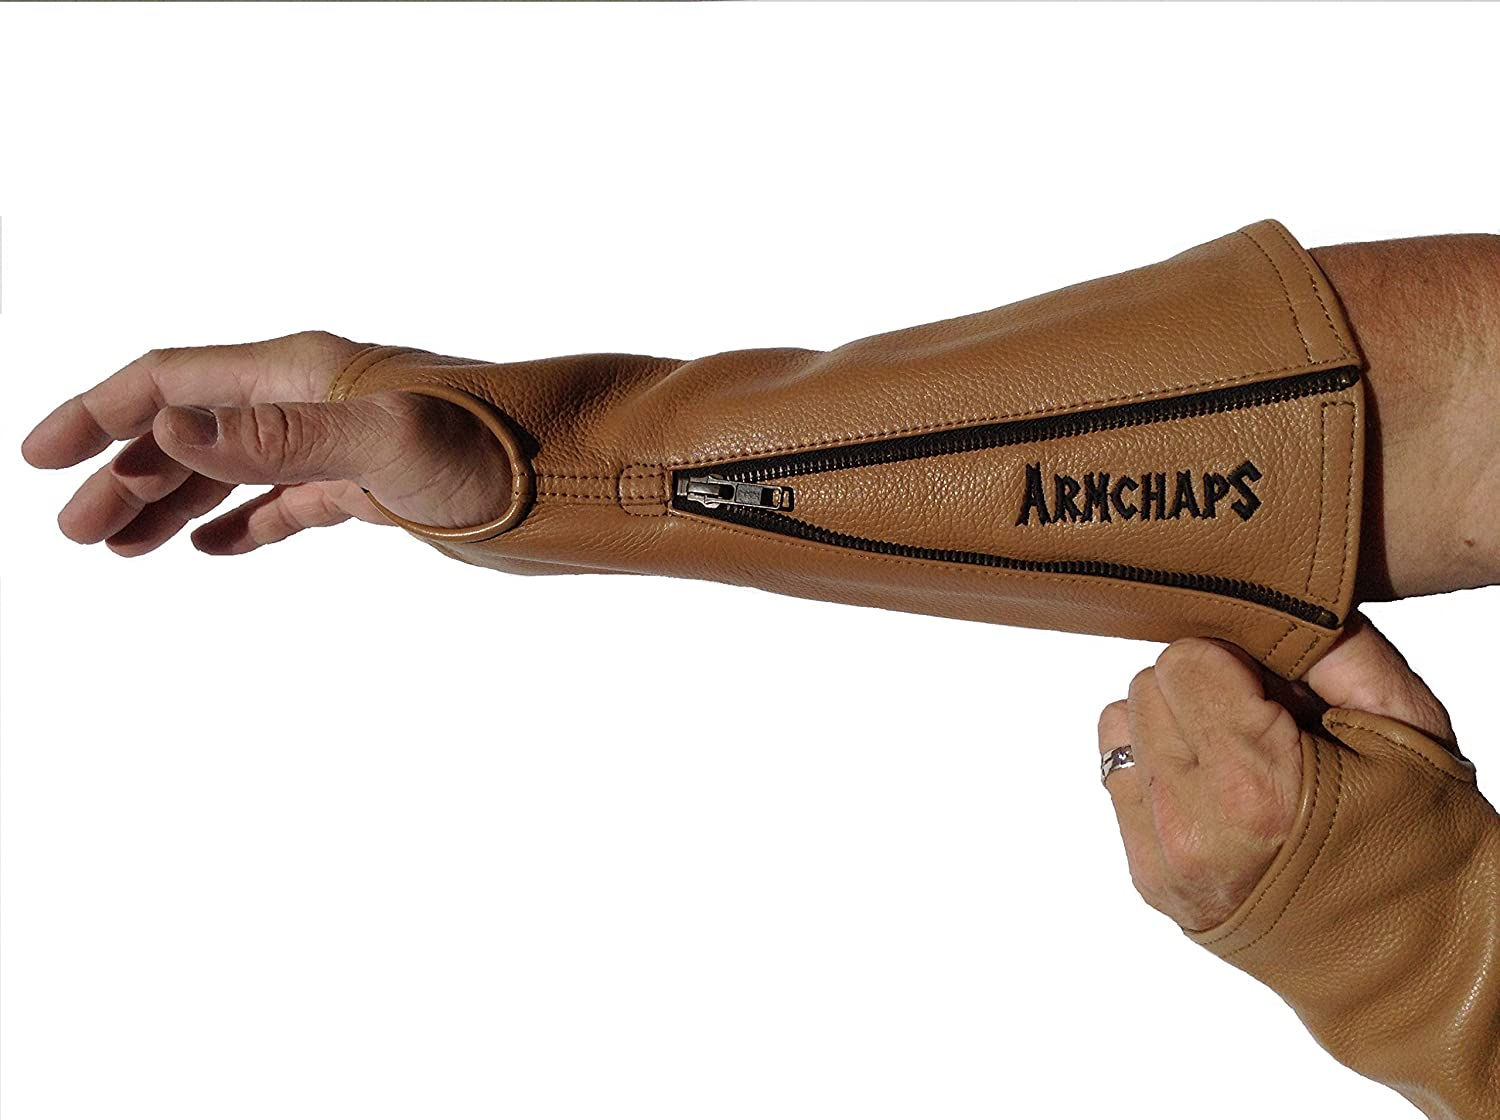 Arm Chaps Leather Protective Arm Guard Sleeves to Prevent Cuts, Scratches, Bruising & Protect Thin Skin. For Male & Female all ages. Brown (1 Pair/Large). Left & Right form-fitting.